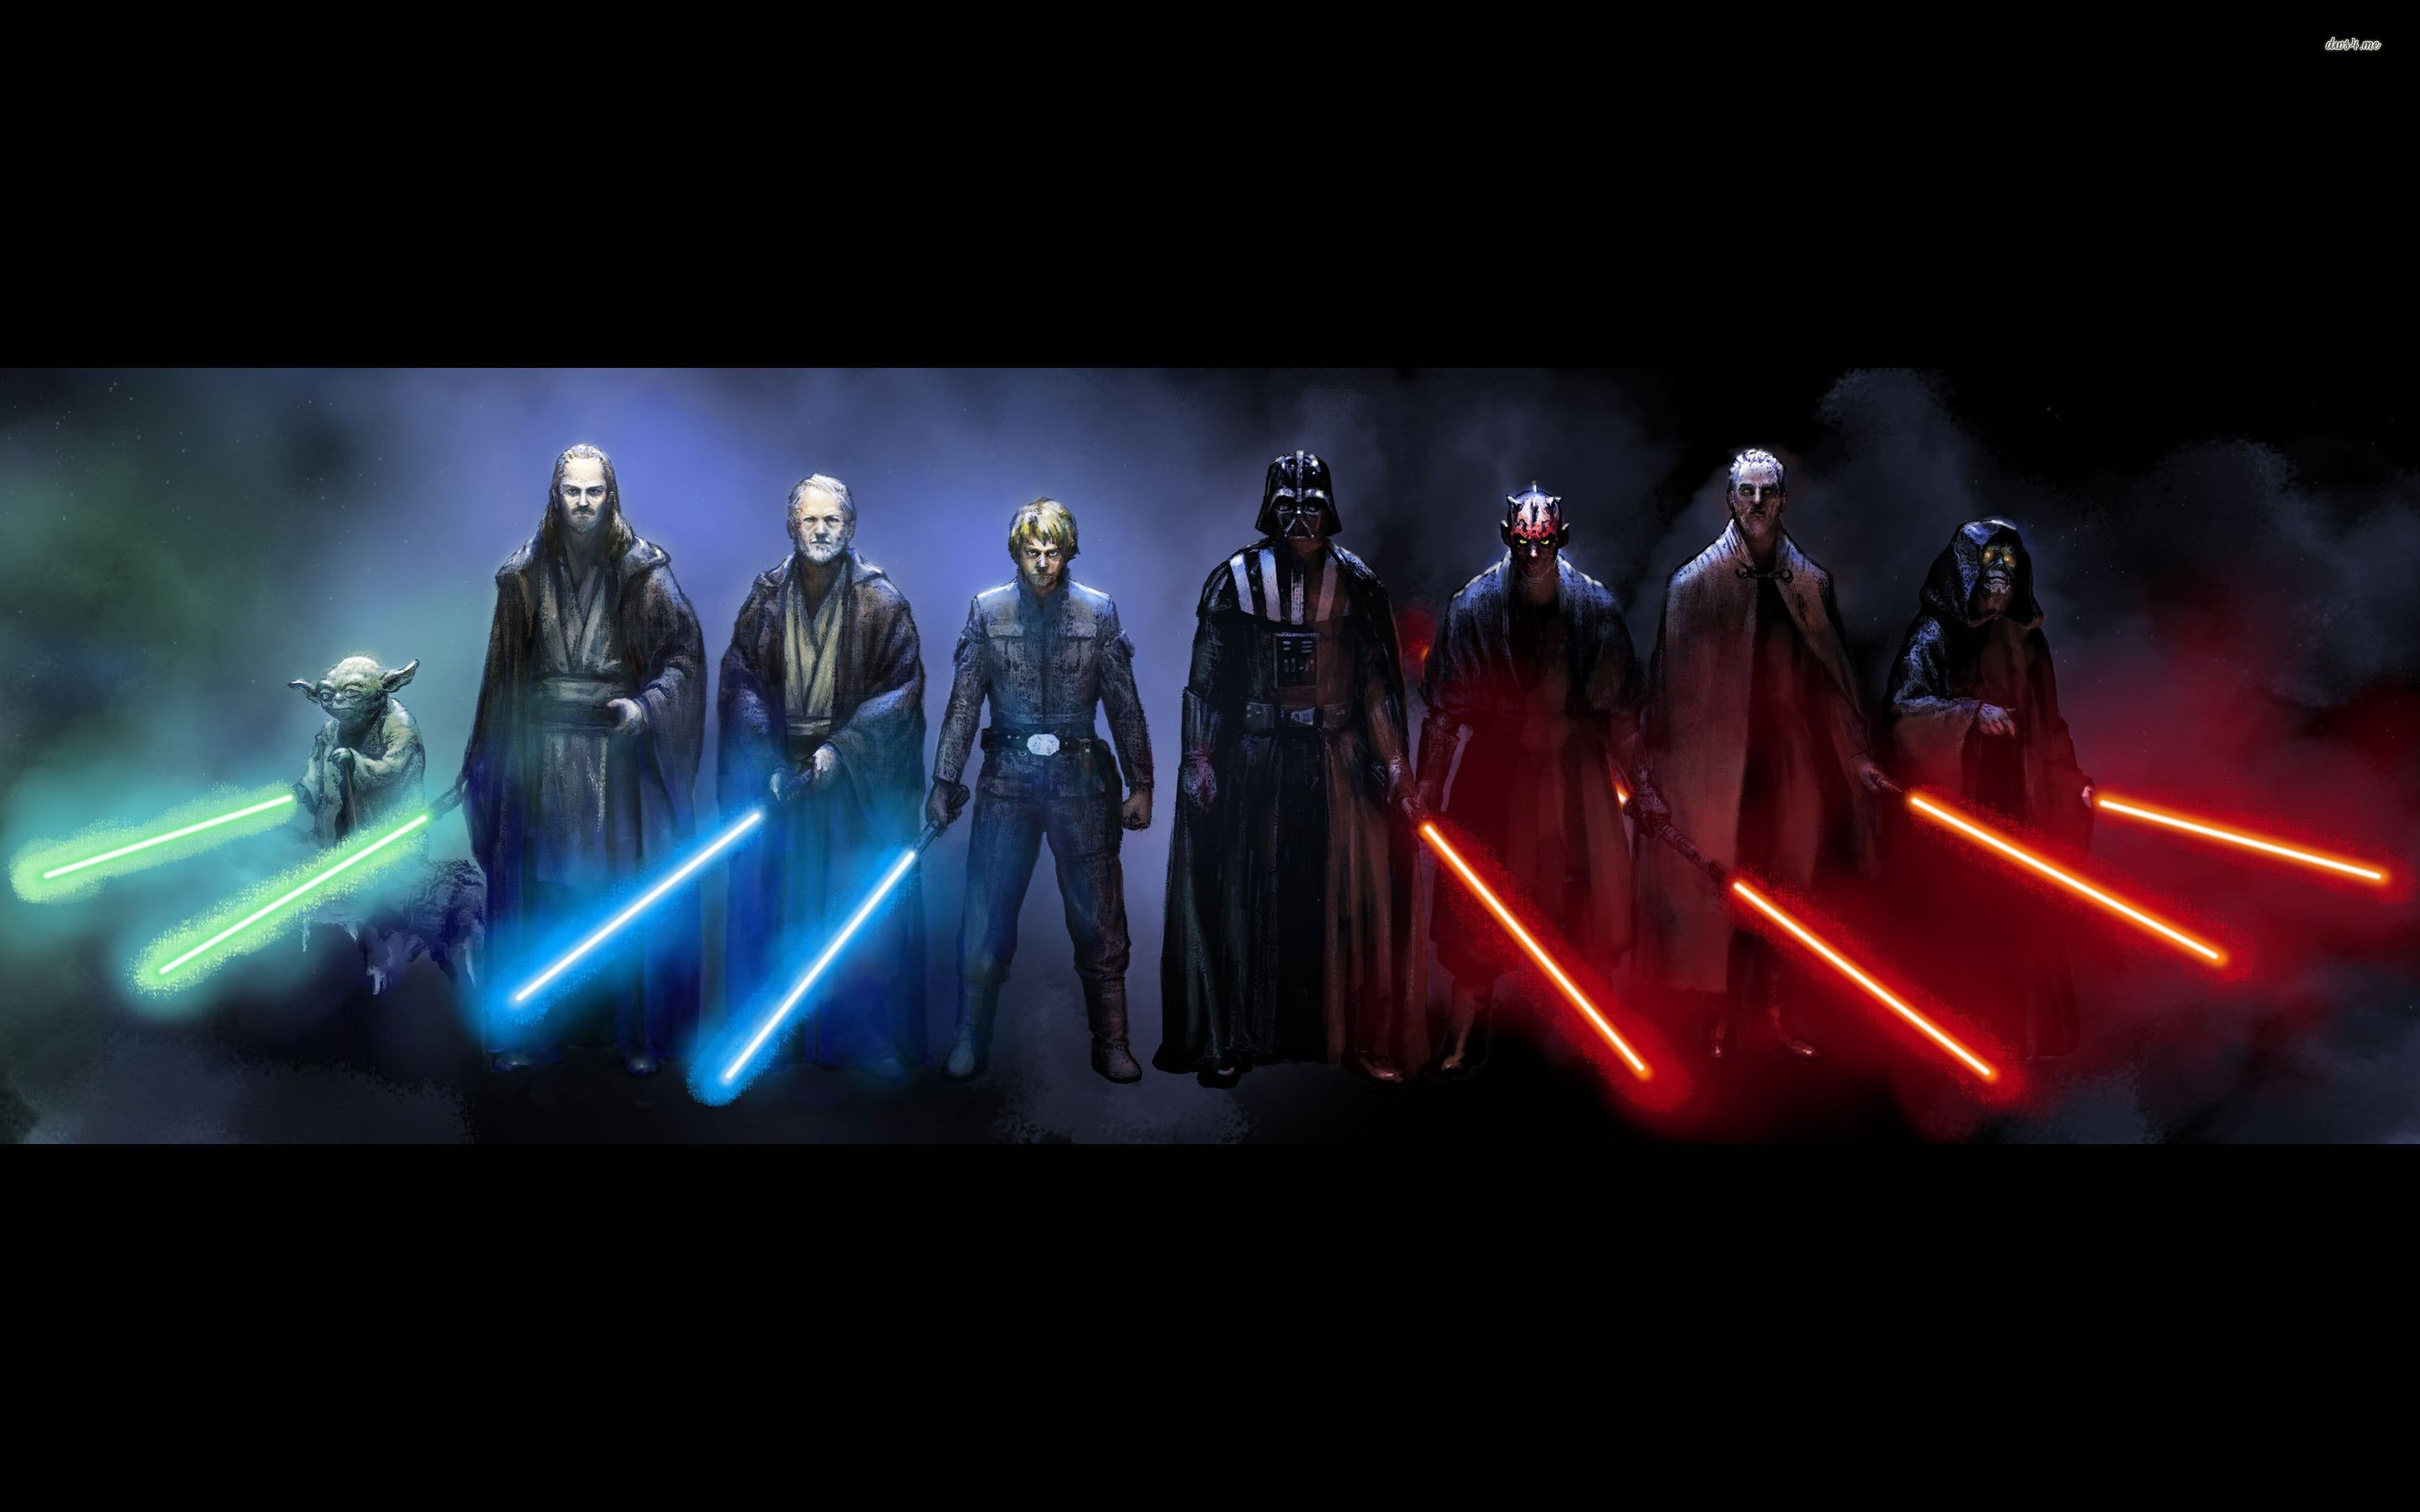 Jedi and Sith   Star Wars wallpaper   Movie wallpapers   17310 2880x1800